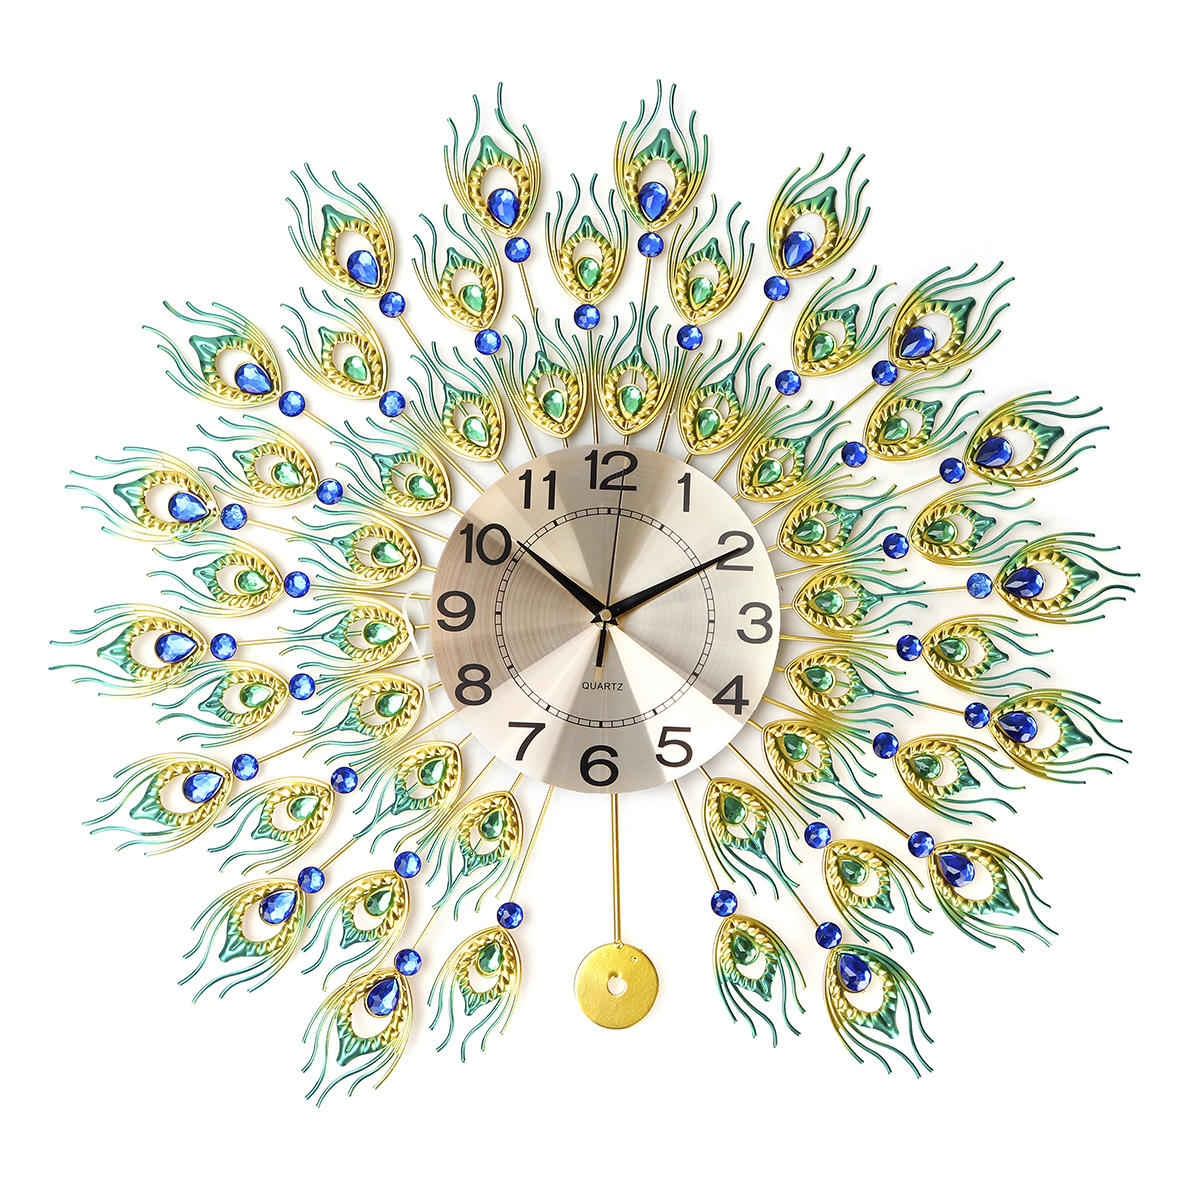 DIY 3D Metal Peacock Wall Clock Crystal Diamond Clocks Watch Ornaments Home Living Room Hotel Decor Crafts Gift Large 70